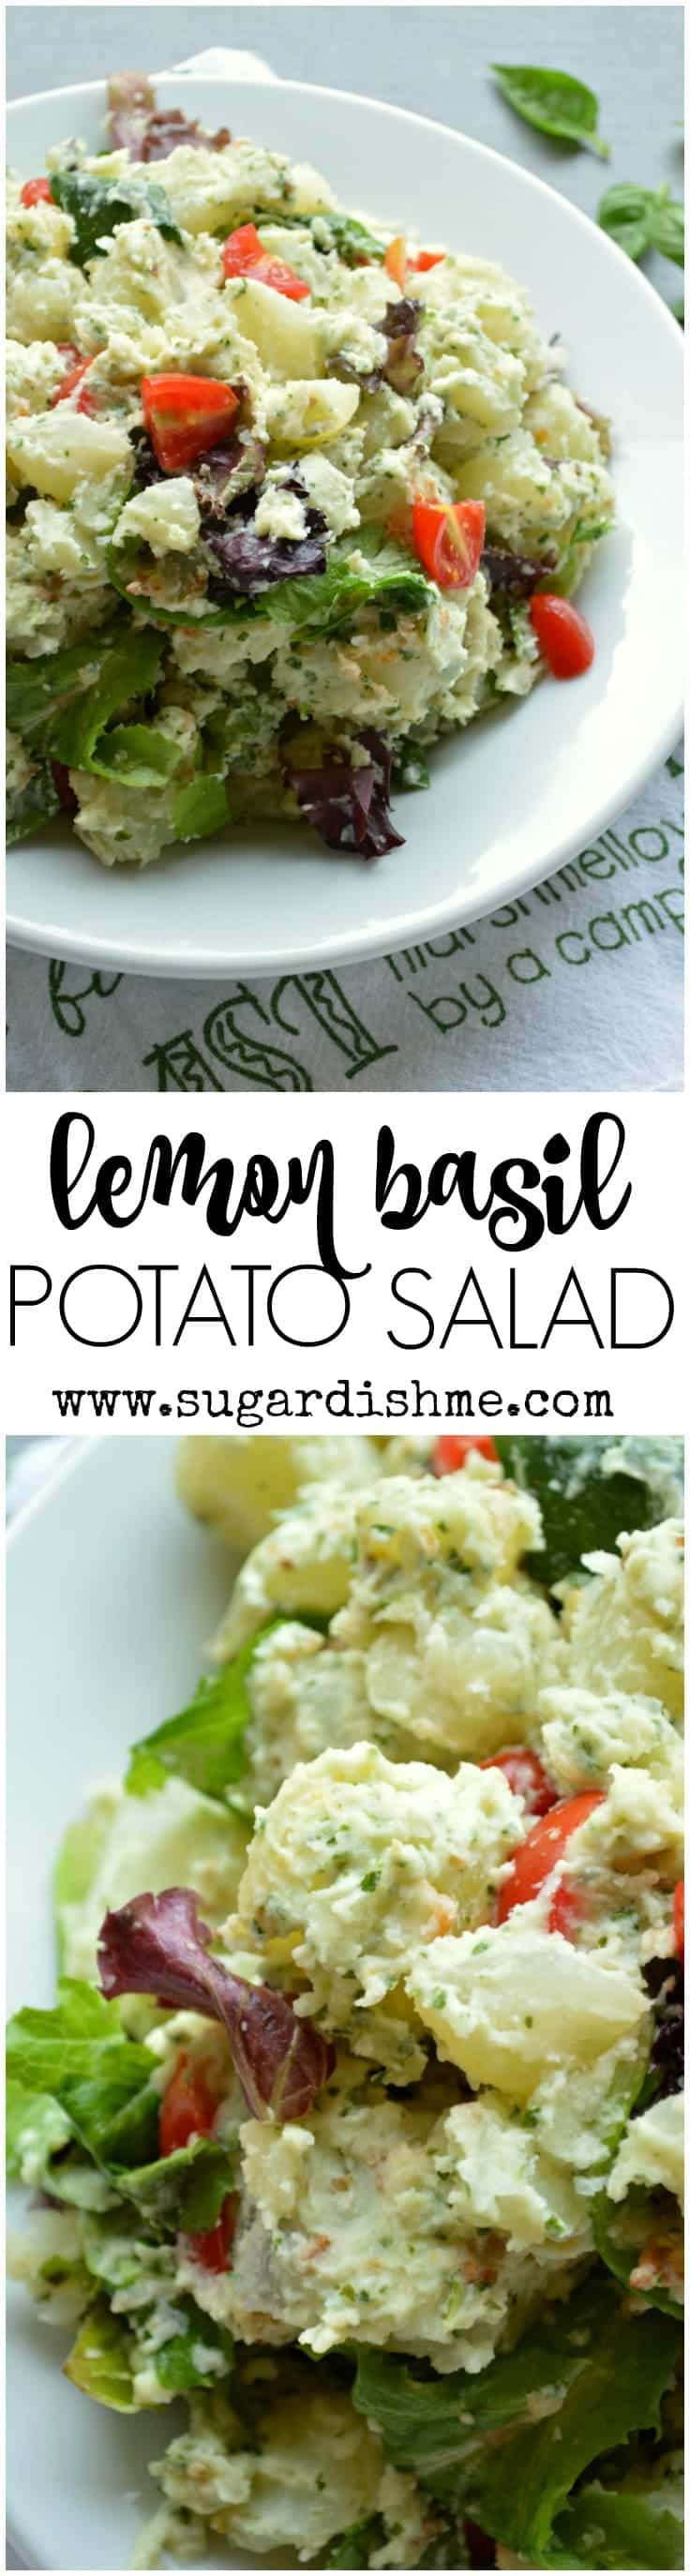 This Lemon Basil Potato Salad Recipe is tossed in a light creamy pesto dressing that sets it apart. So much flavor in this simple side dish.